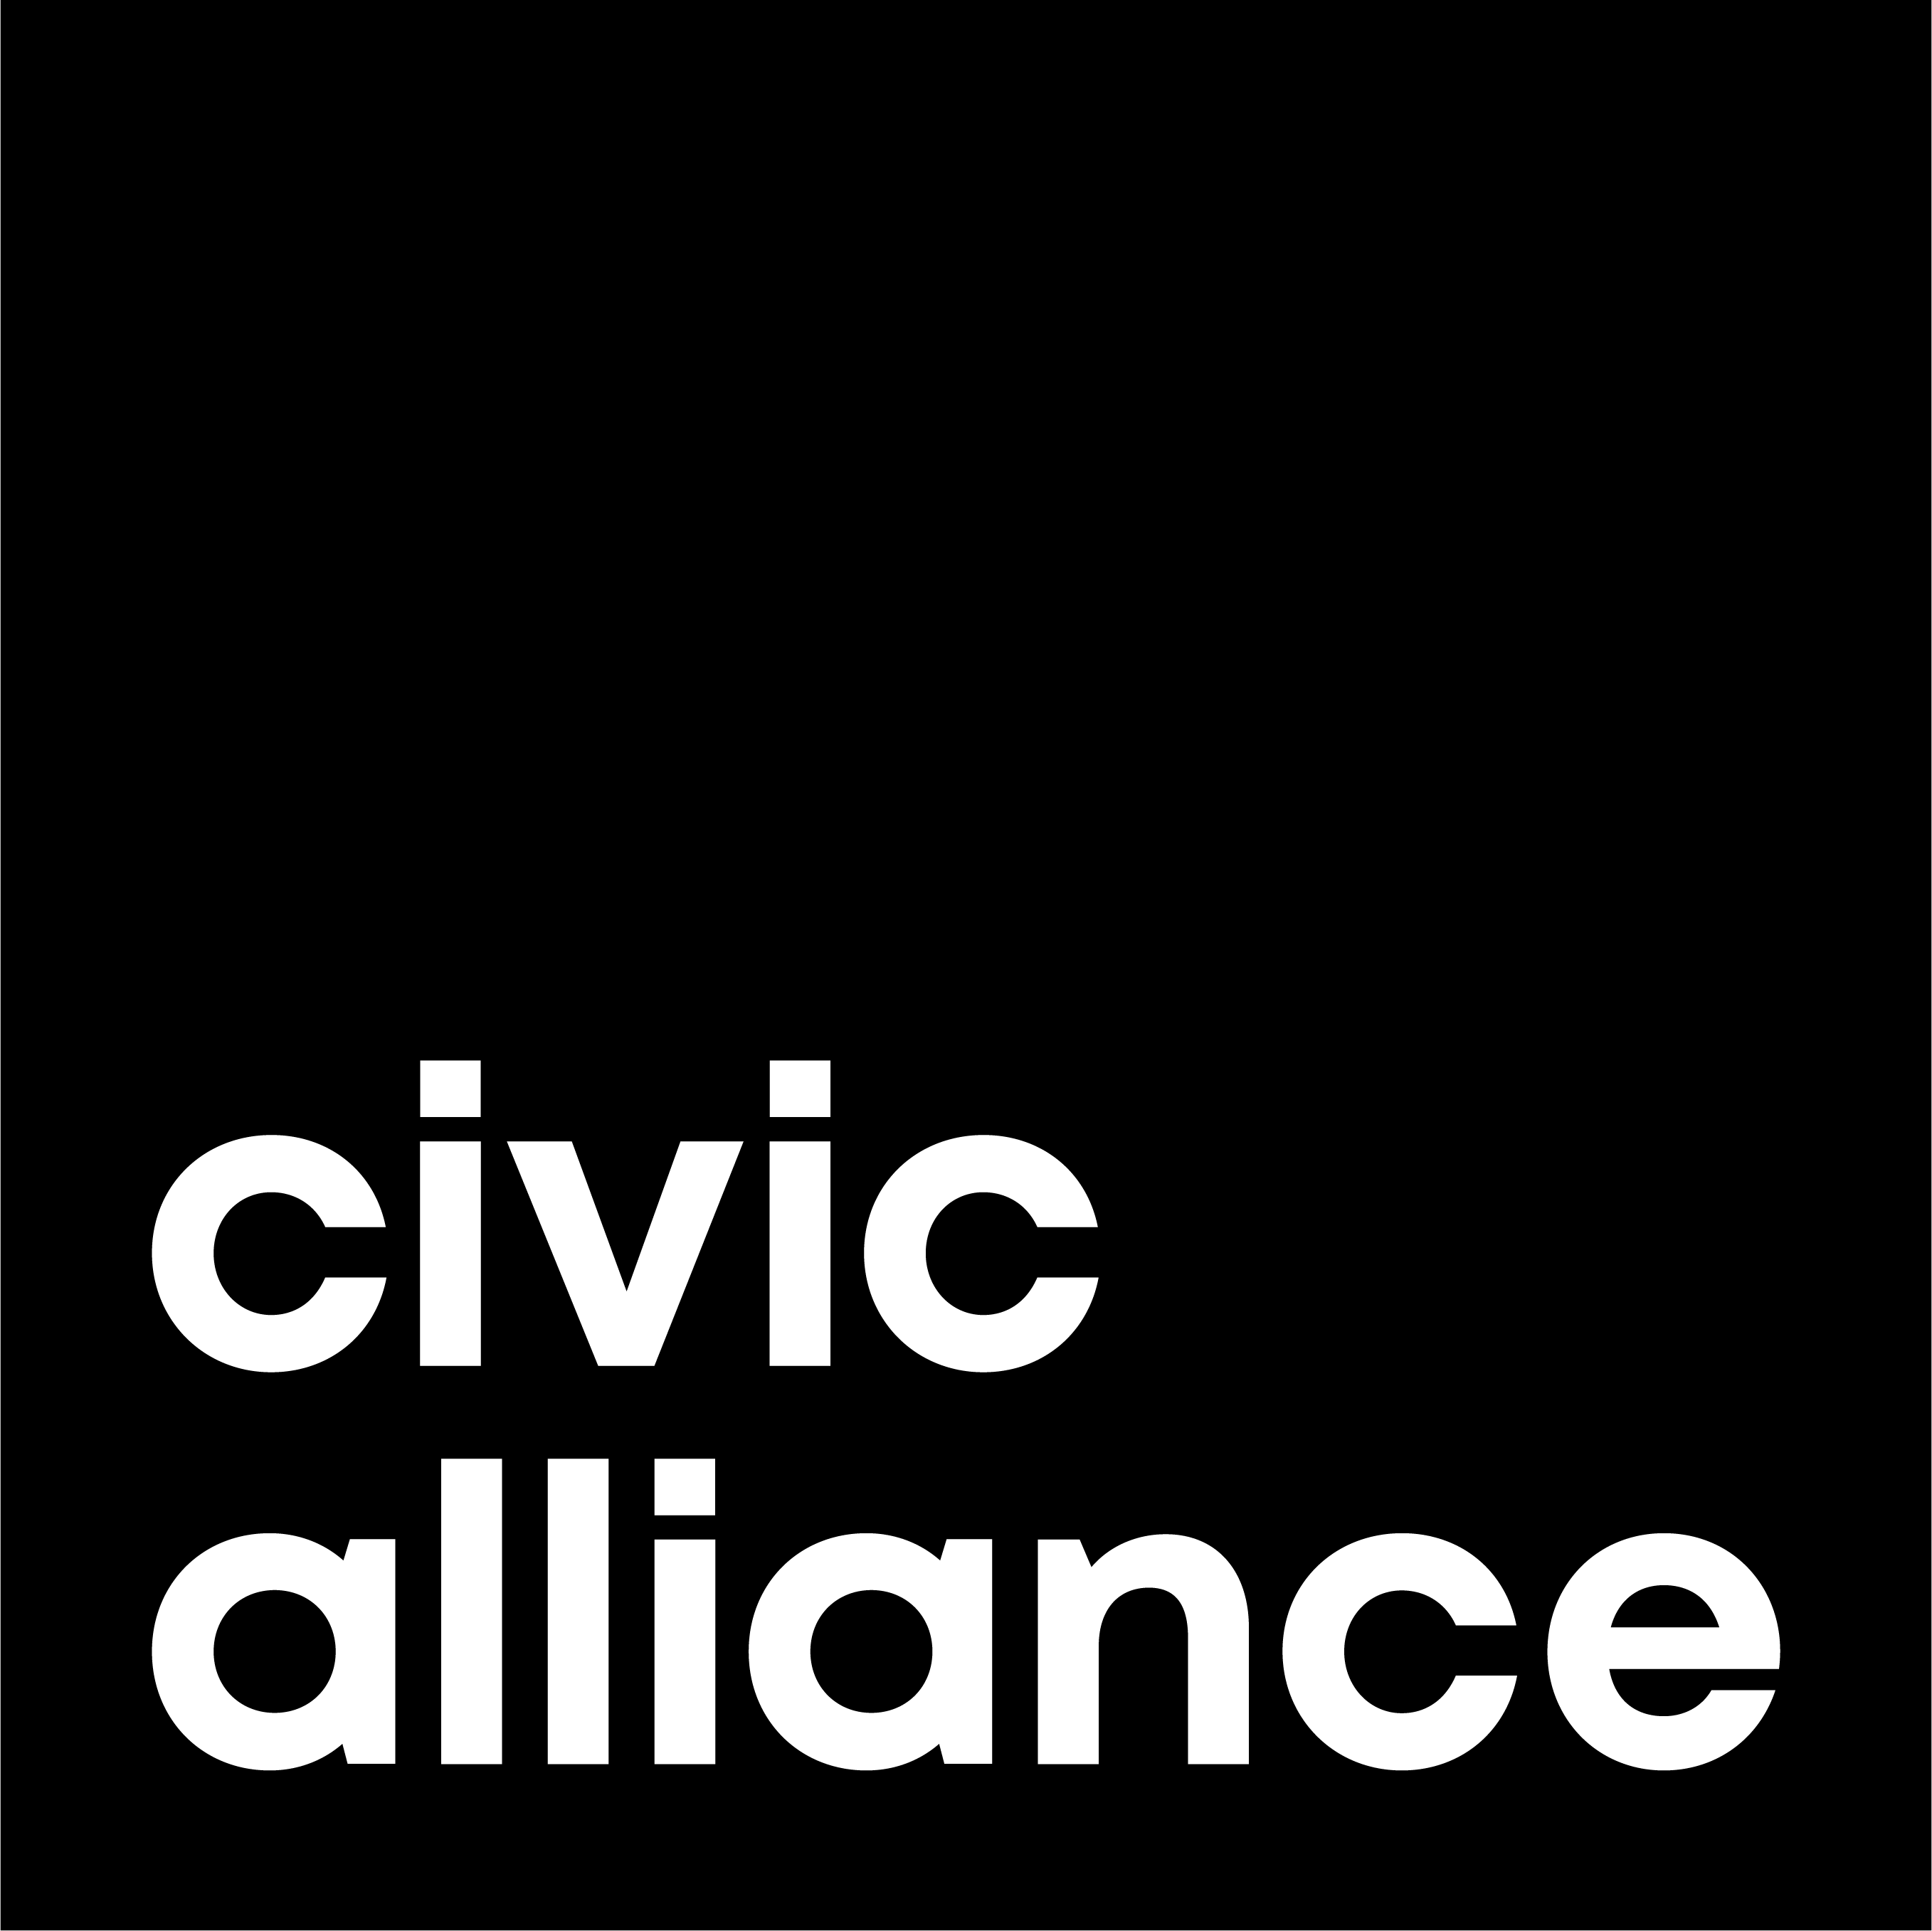 Civic Alliance - Black